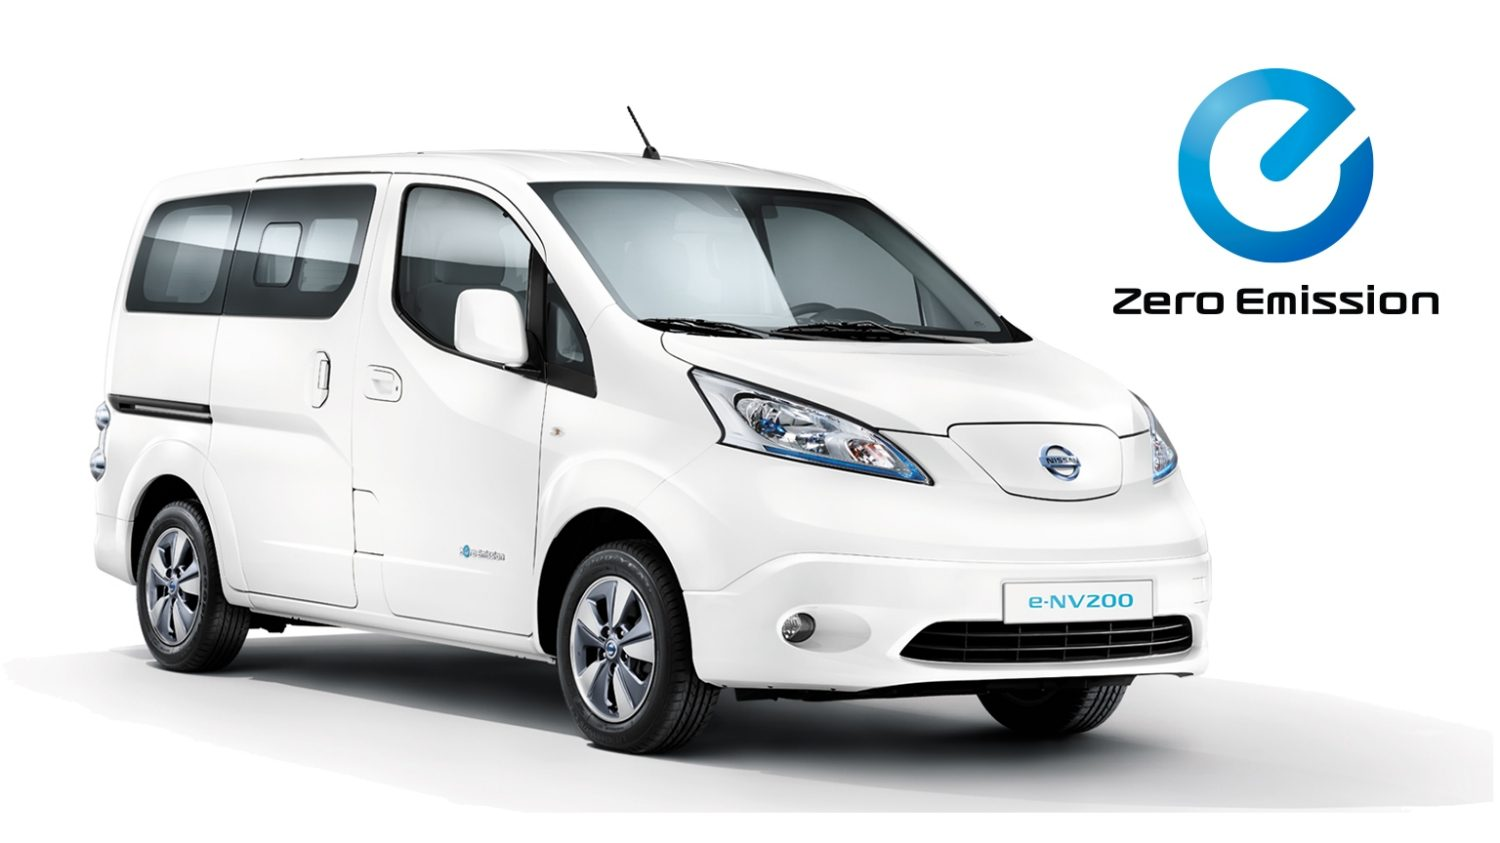 Nissan e-NV200 7-seater